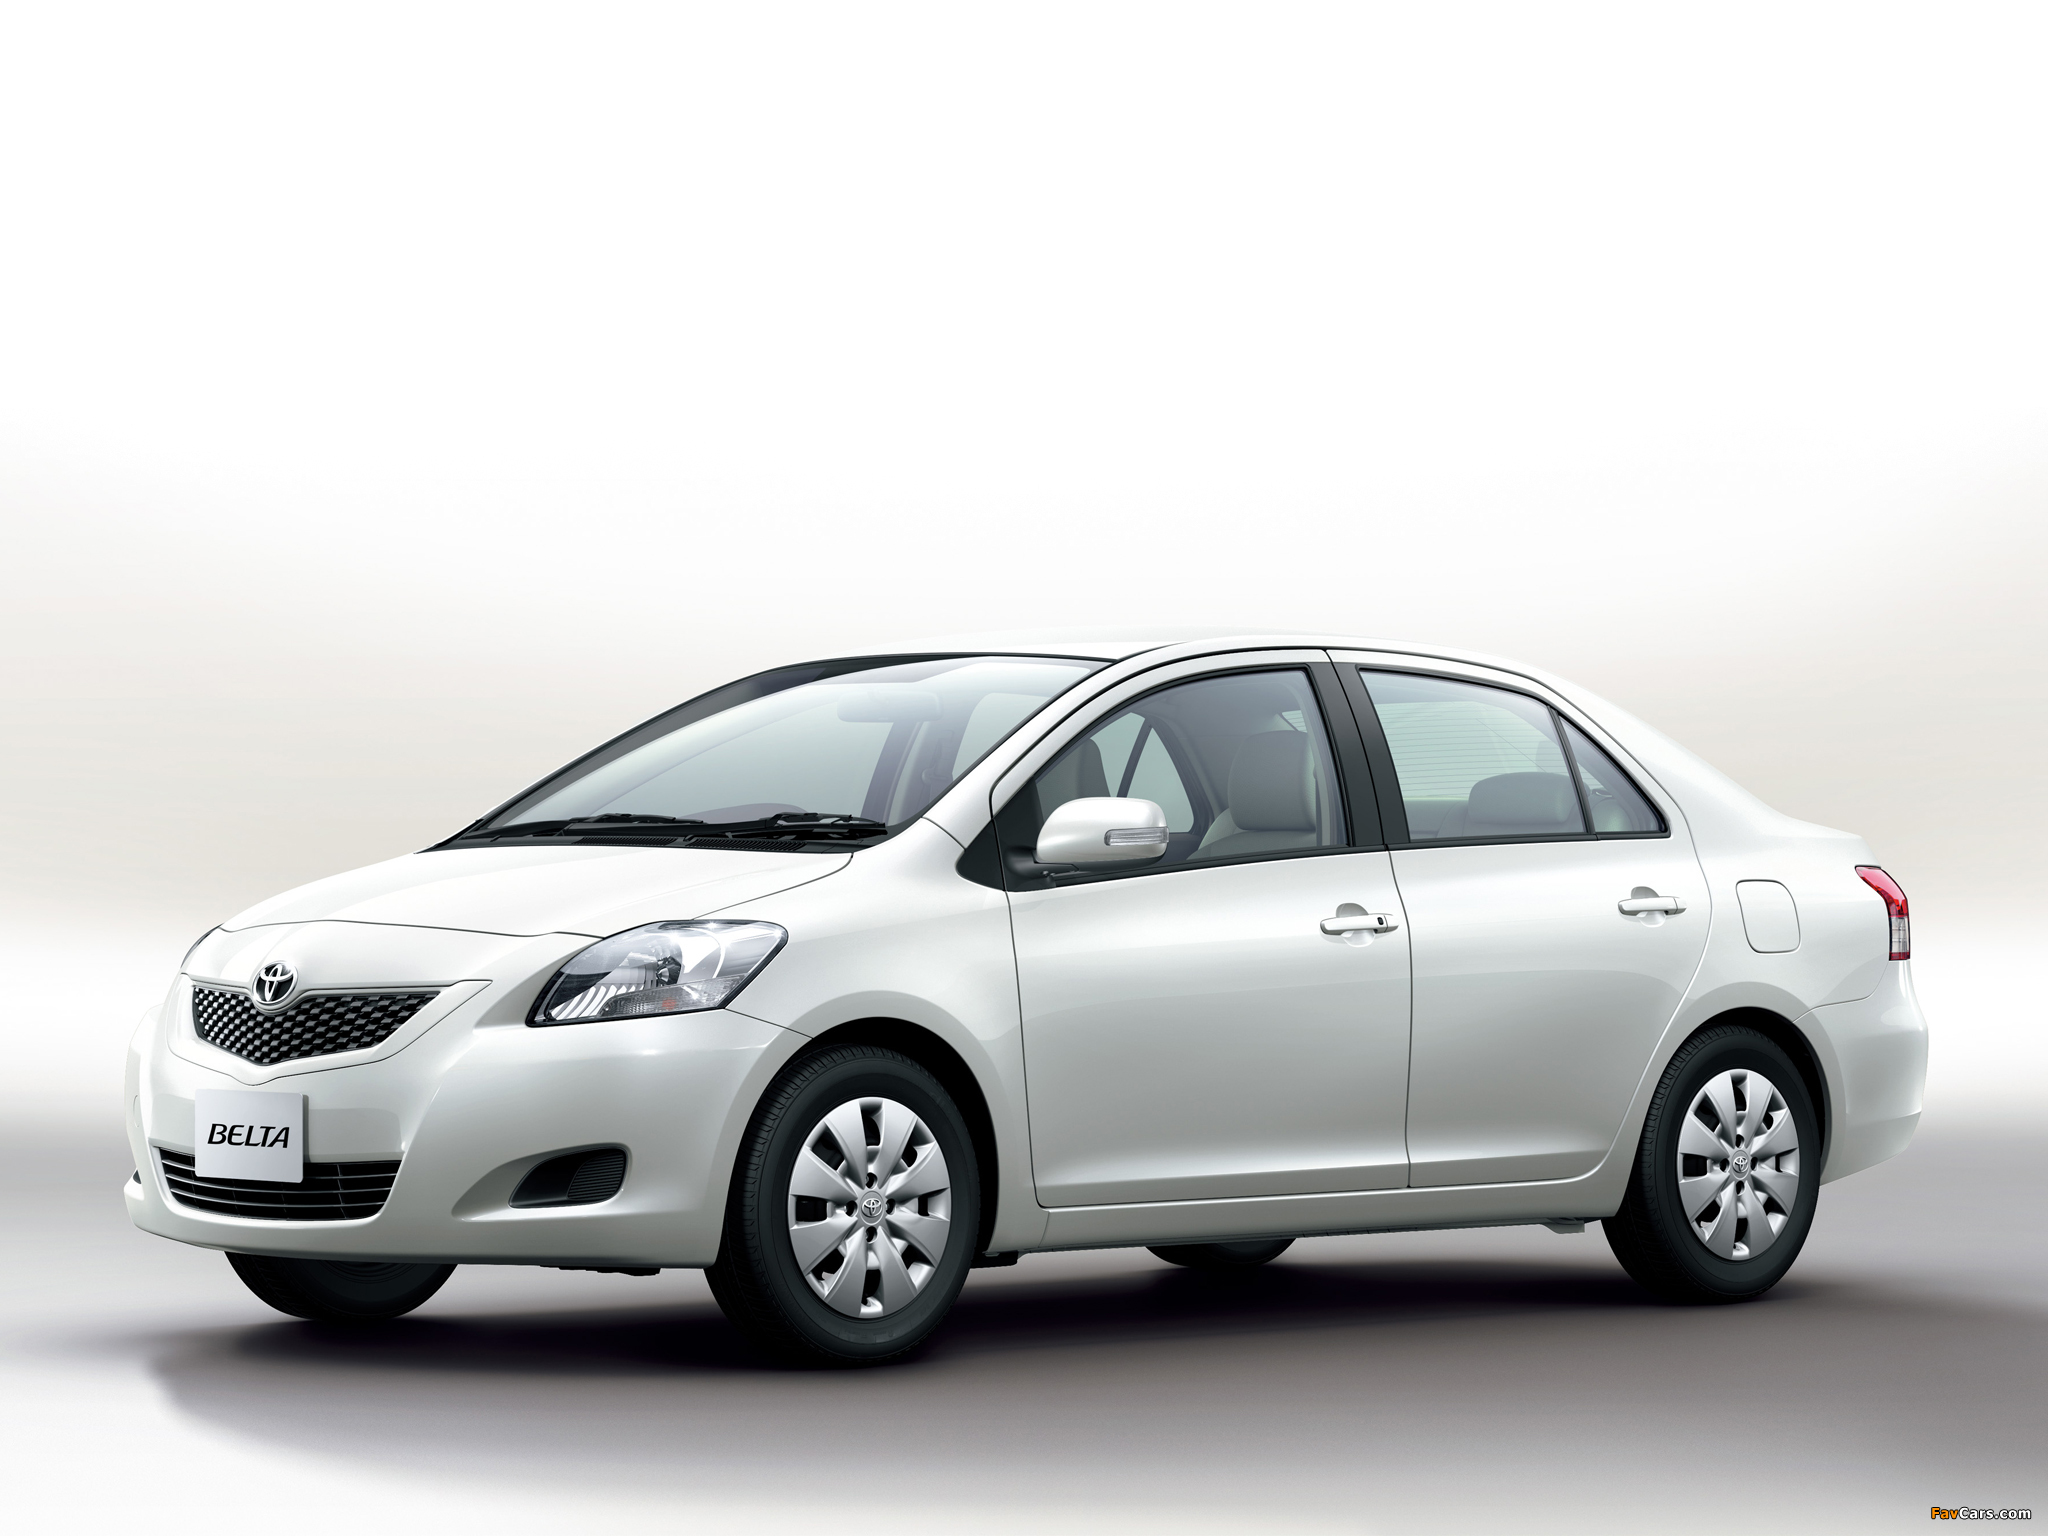 Toyota Belta   Restored Cars in Your City